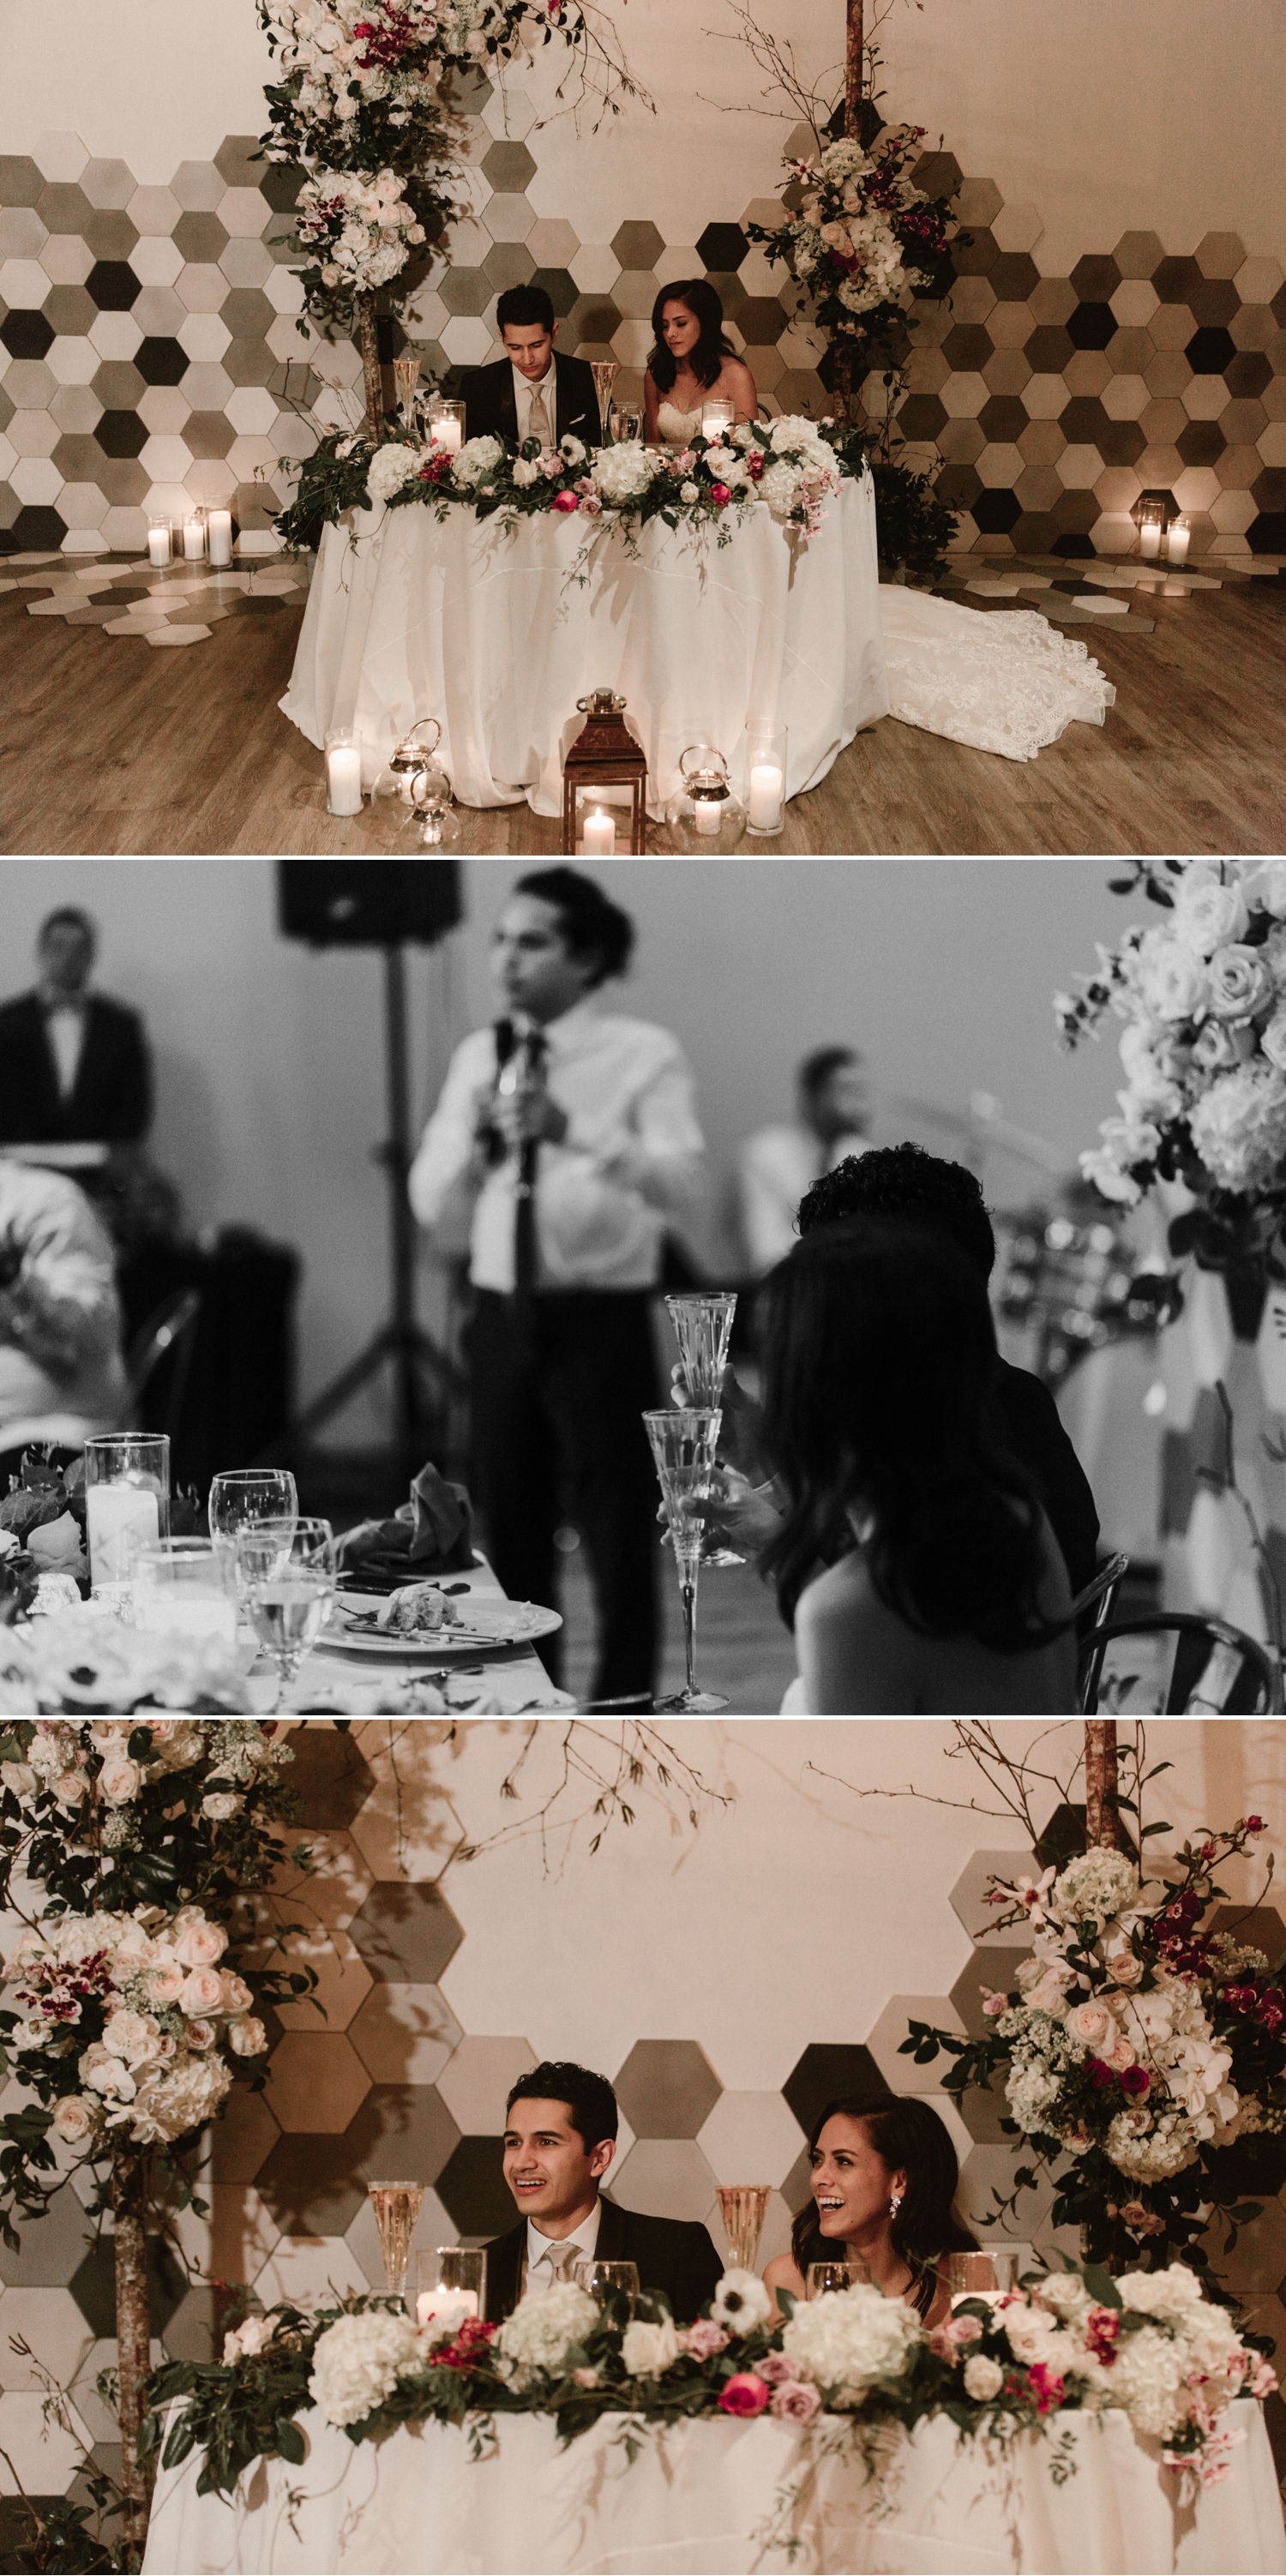 Toasts, Indoor wedding reception at 1912 in Santa Ana by Paige Nelson